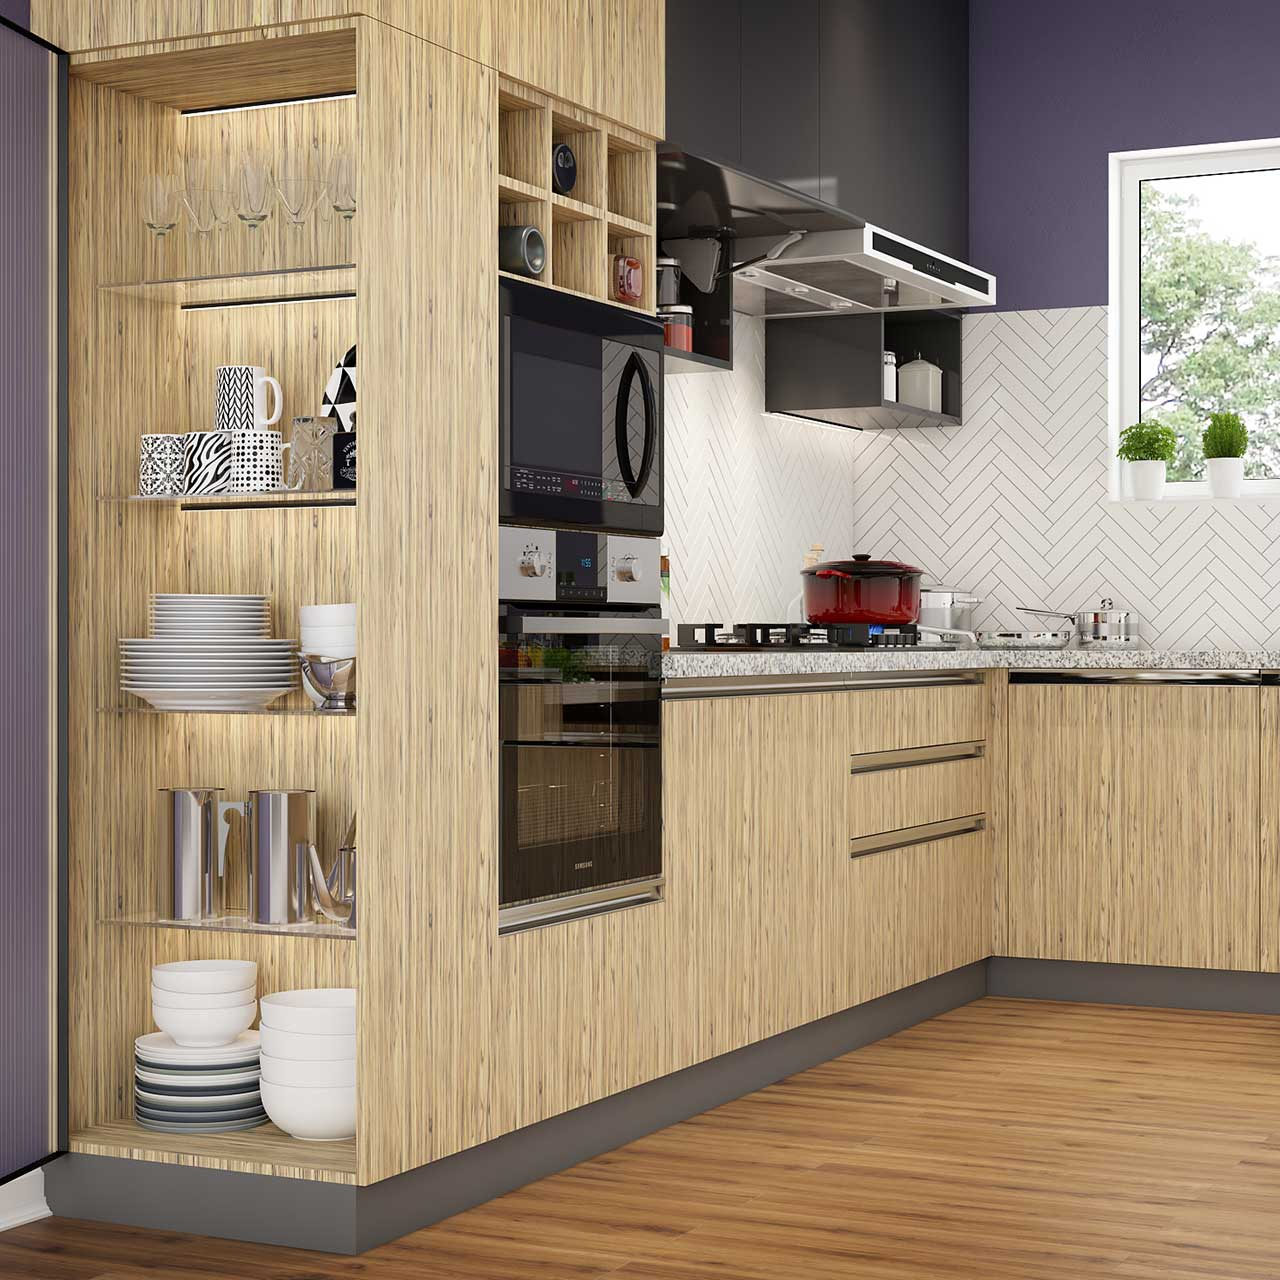 Tall Units for enhancing the storage space in your Modular Kitchen.